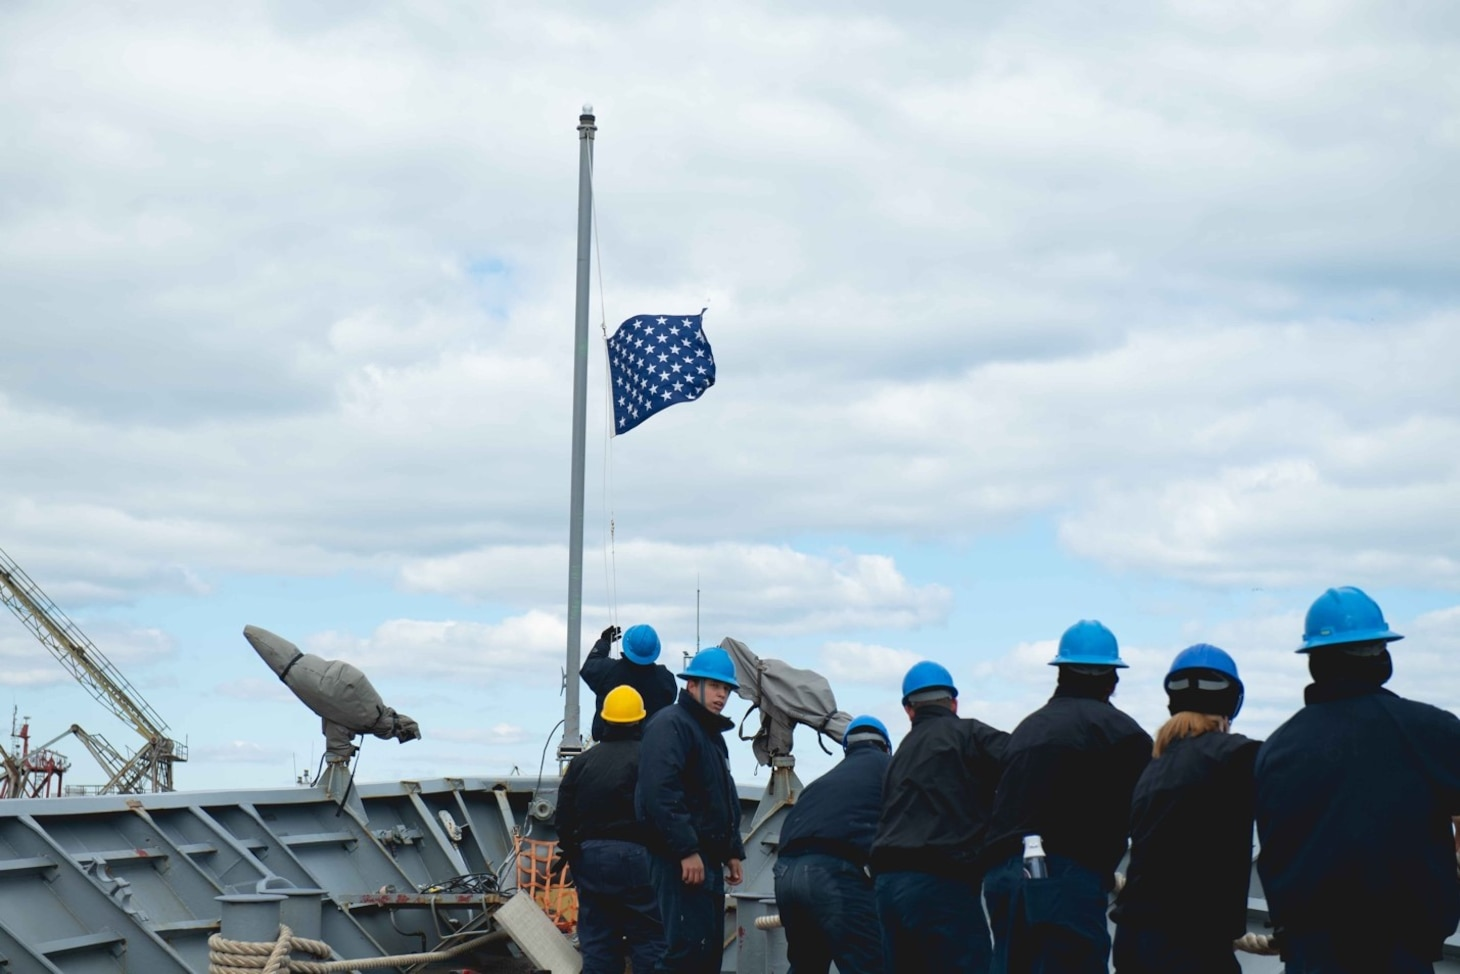 210323-N-WQ732-1063 CONSTANTA, Romania (March 23, 2021) Sailors lower the Union Jack flag and pull mooring lines aboard as the Ticonderoga-class guided-missile cruiser USS Monterey (CG 61), prepares to depart from Constanta, Romania, March 23, 2021.  Monterey is operating with the IKE Carrier Strike Group on a routine deployment in the U.S. Sixth Fleet area of operations in support of U.S. national interests and security in Europe and Africa. (U.S. Navy photo by Mass Communication Specialist Seaman Chelsea Palmer/Released)